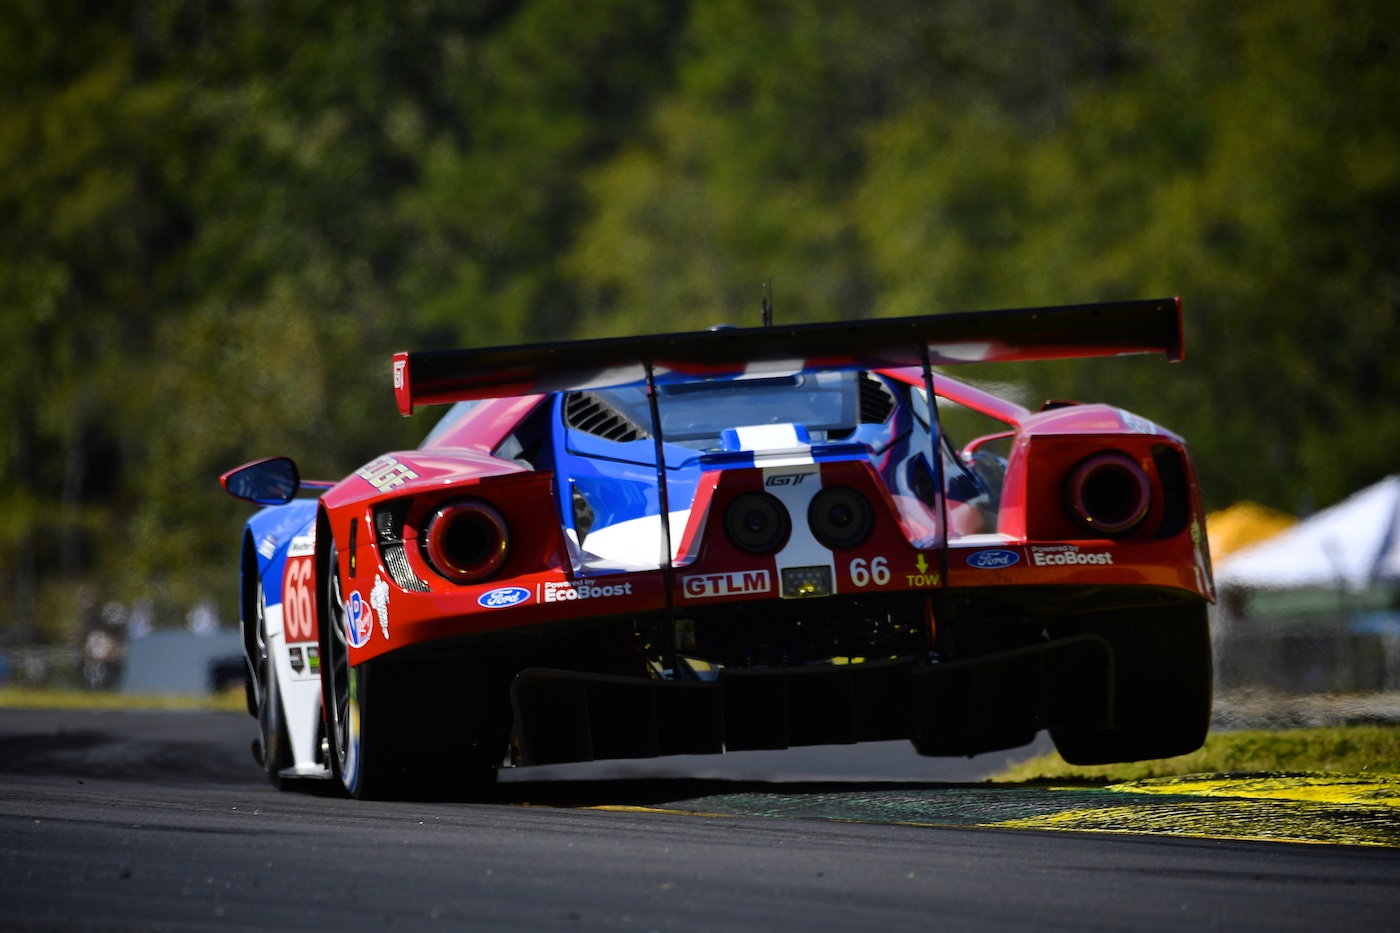 Superstar third drivers join Petit Le Mans lineups